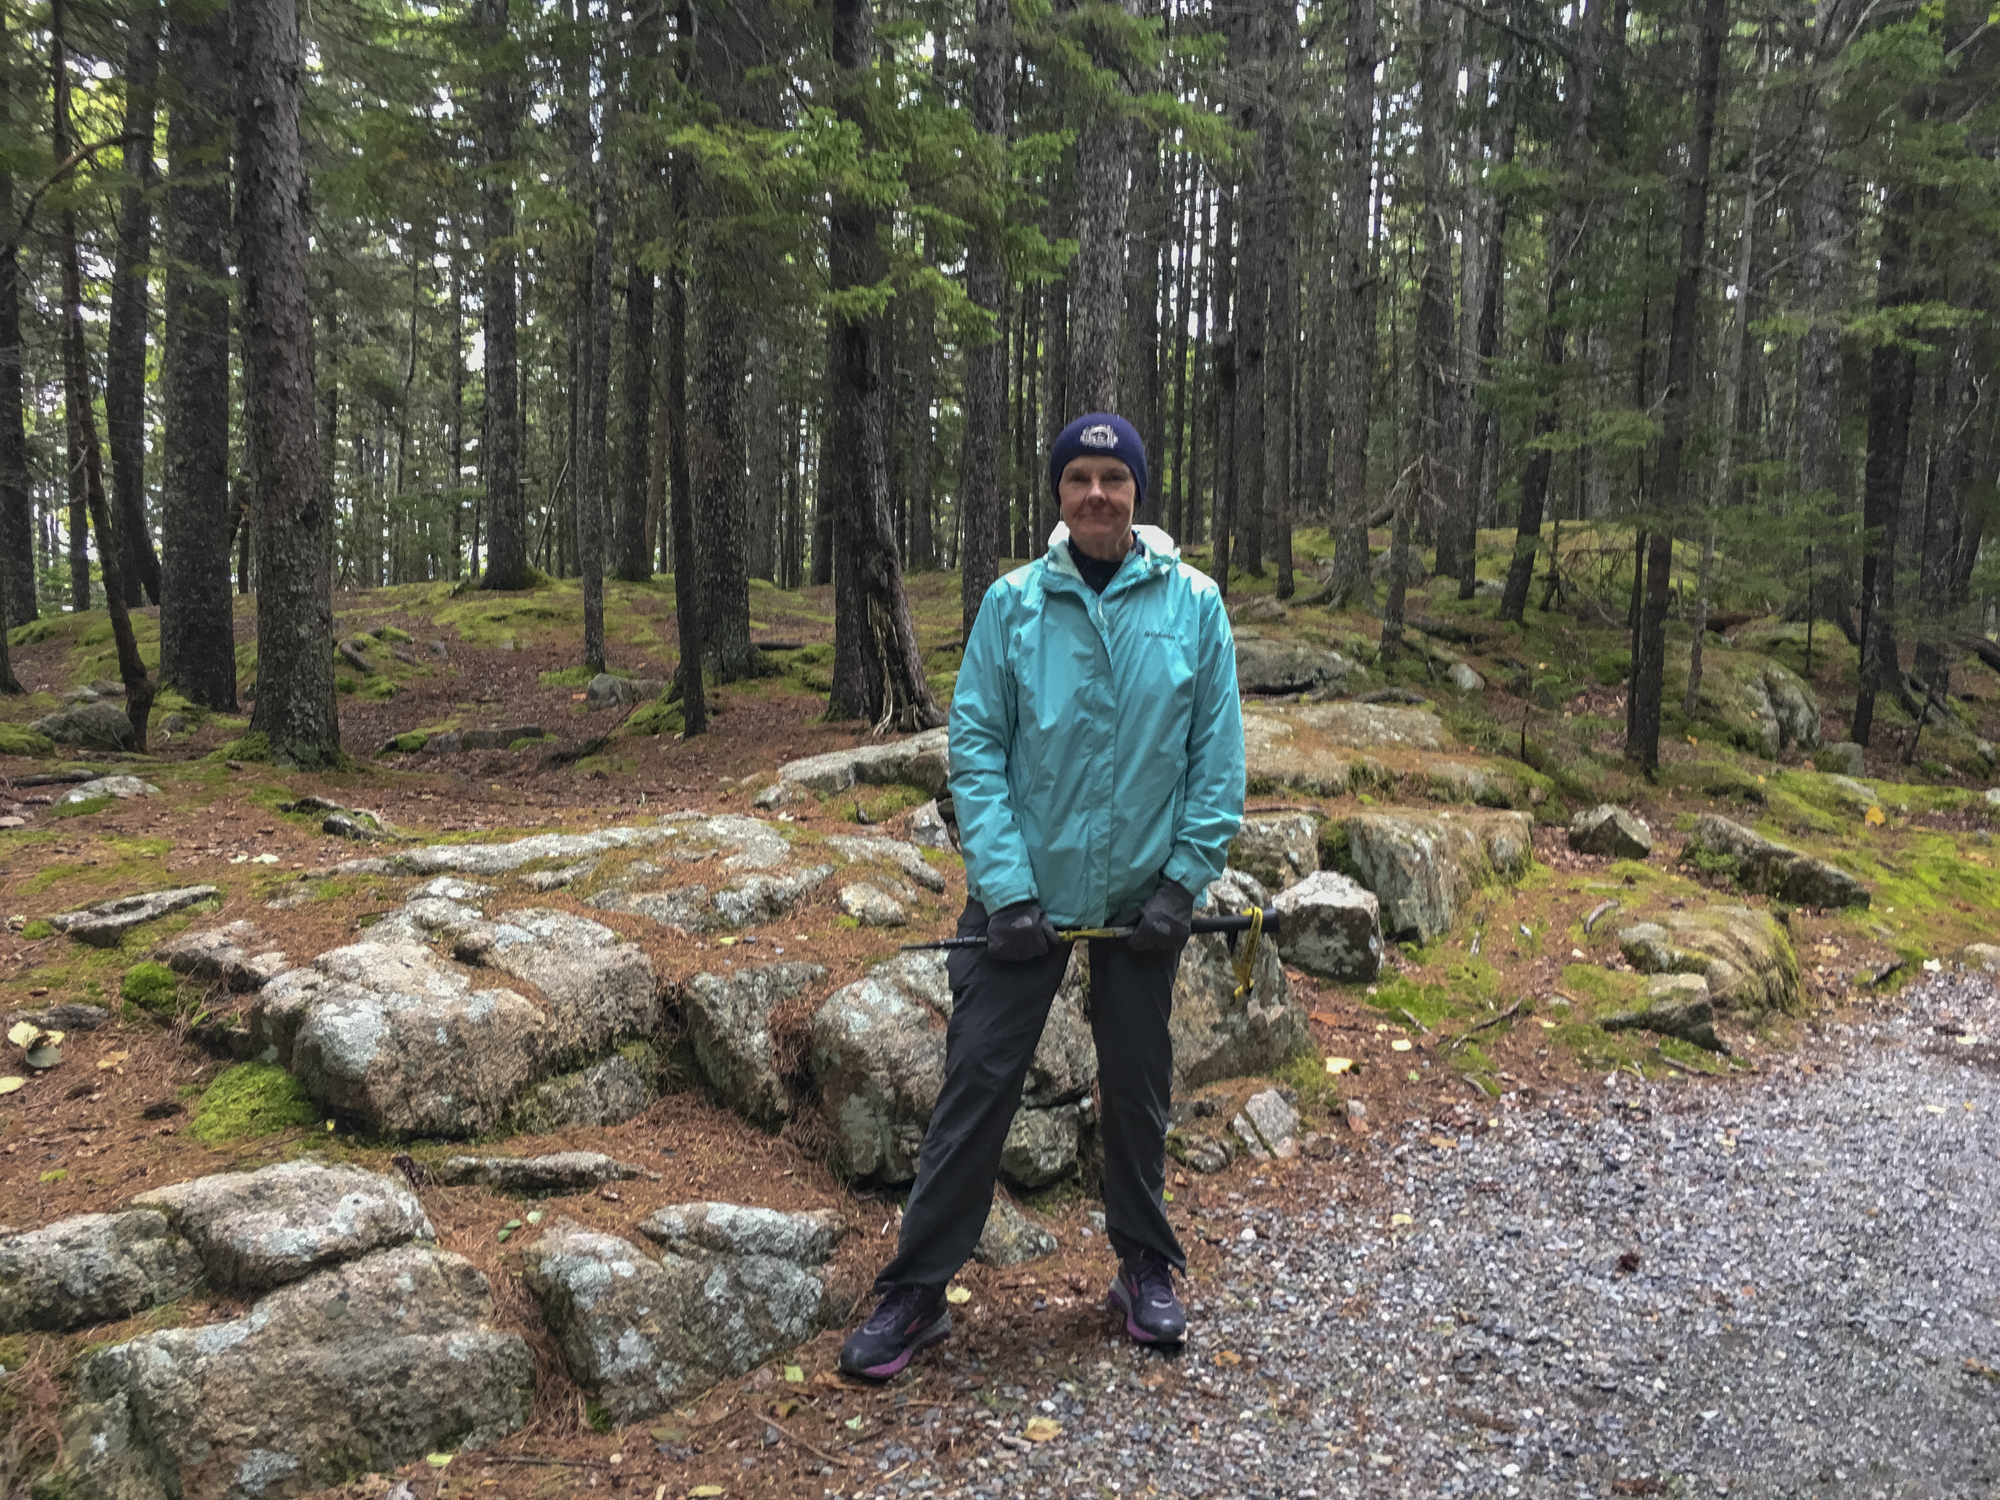 Hiking in Acadia NP